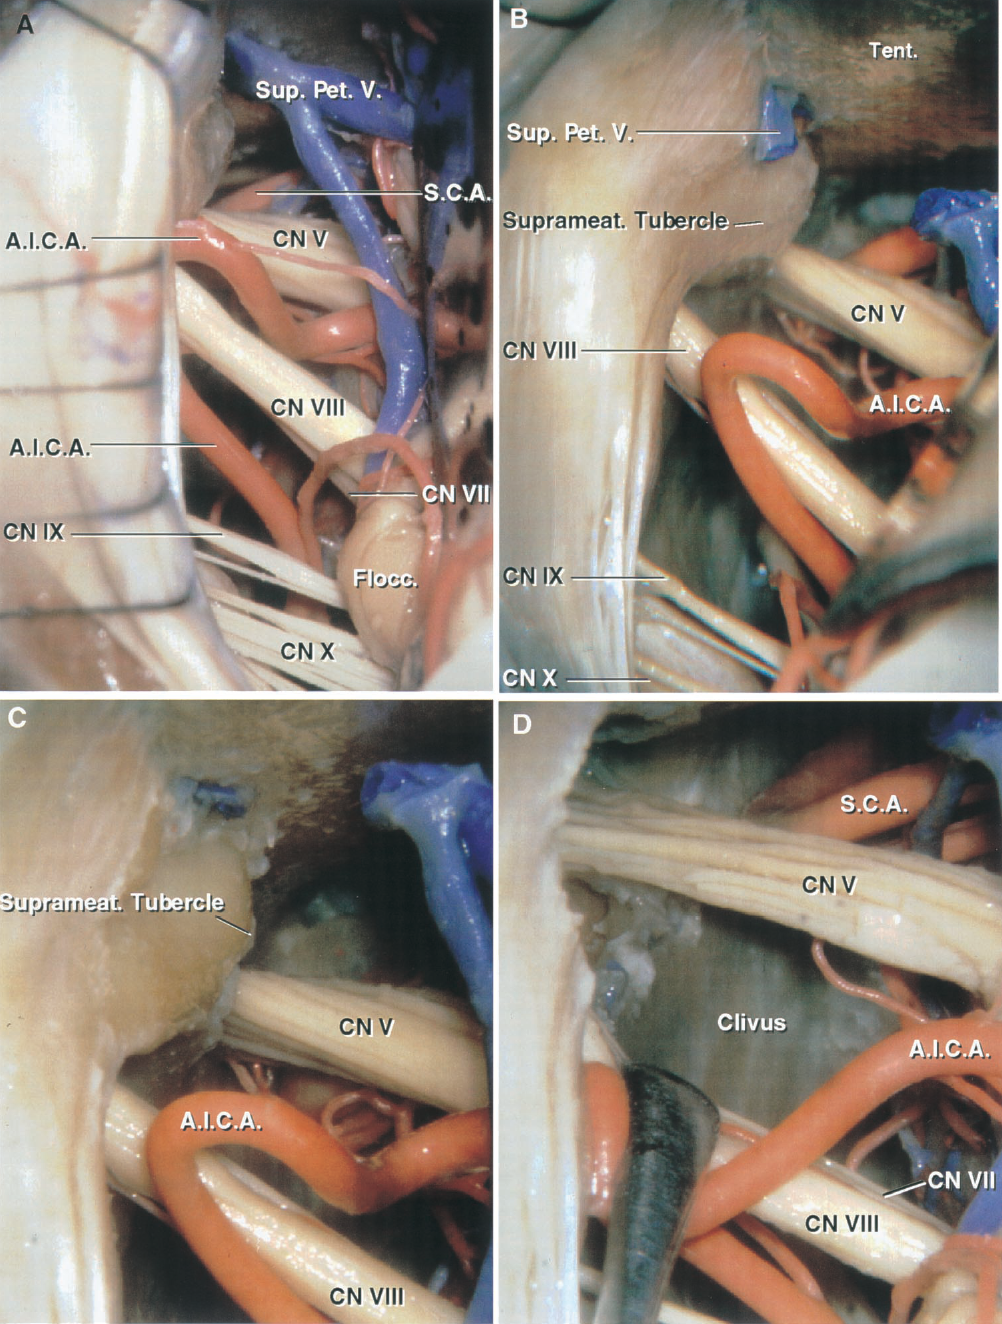 FIGURE 4.15. Suprameatal variant of the retrosigmoid approach. A, the cerebellum has been elevated to expose the nerves in the cerebellopontine angle. A large petrosal vein blocks access to the suprameatal area. B, the superior petrosal vein has been divided to expose the suprameatal tubercle located above the porus of the internal acoustic meatus and lateral to the trigeminal nerve. C, the dura over the suprameatal tubercle has been removed in preparation for drilling.